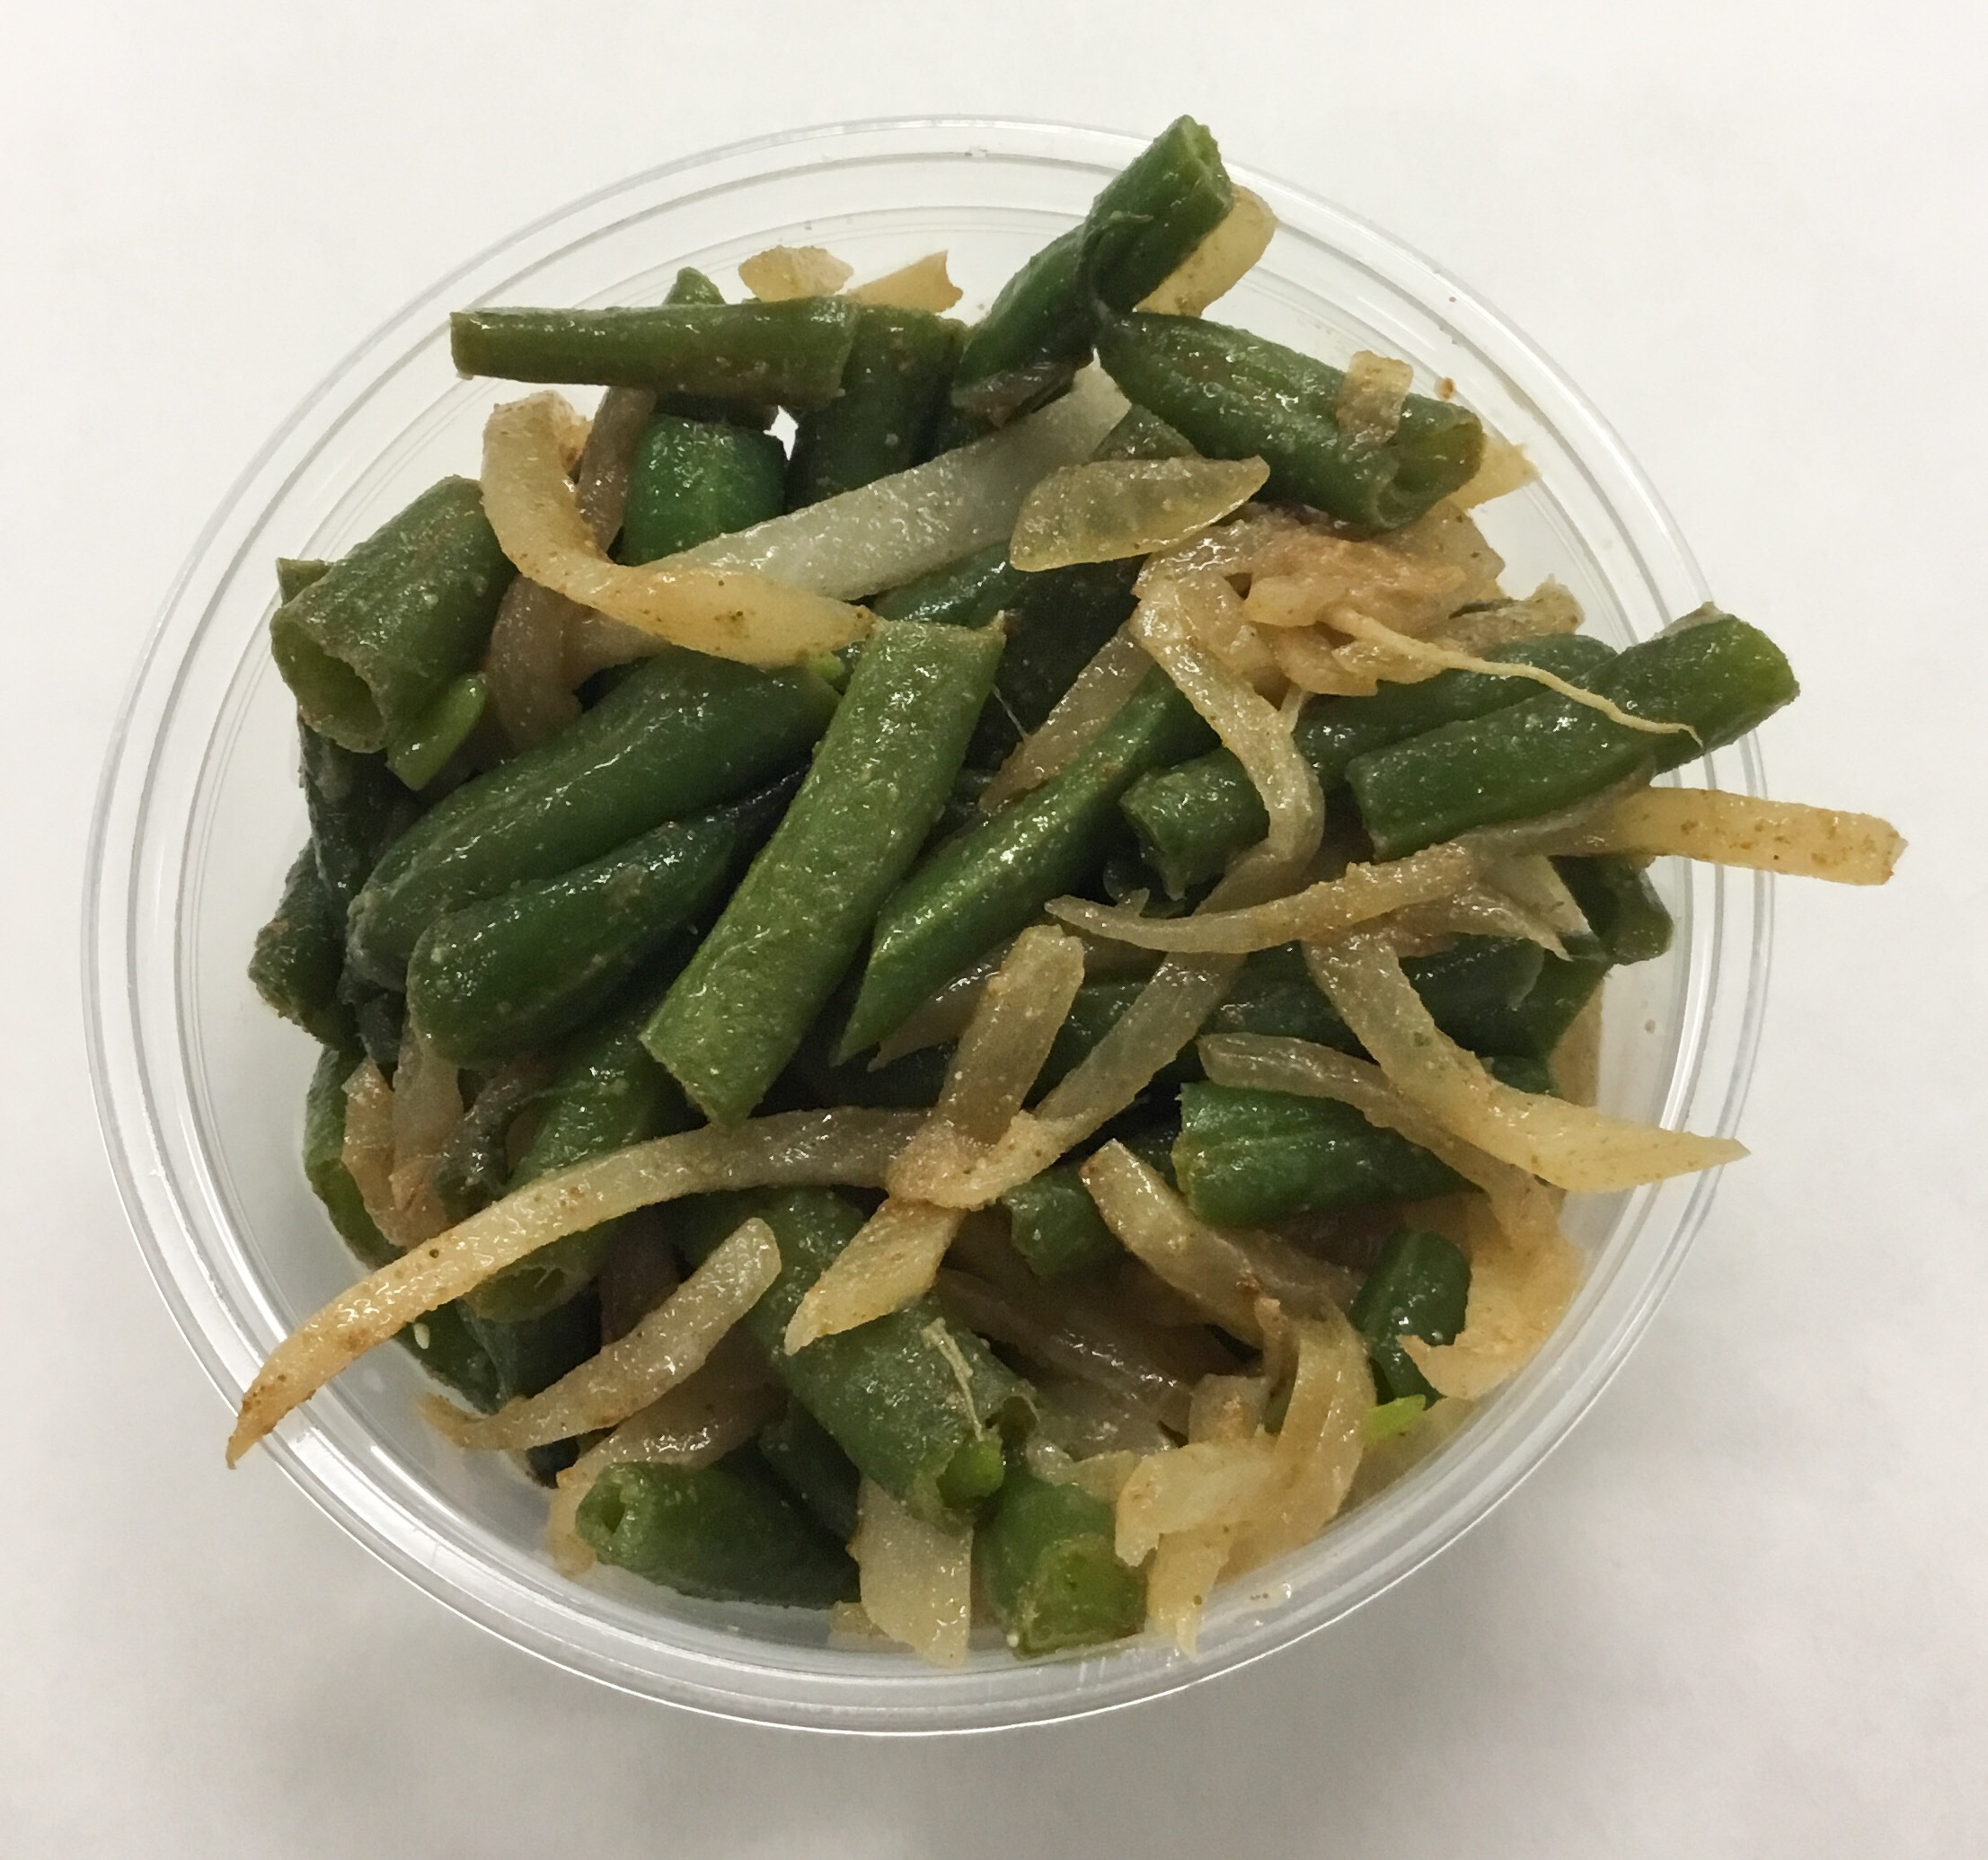 Green beans, daikon radish and onion.